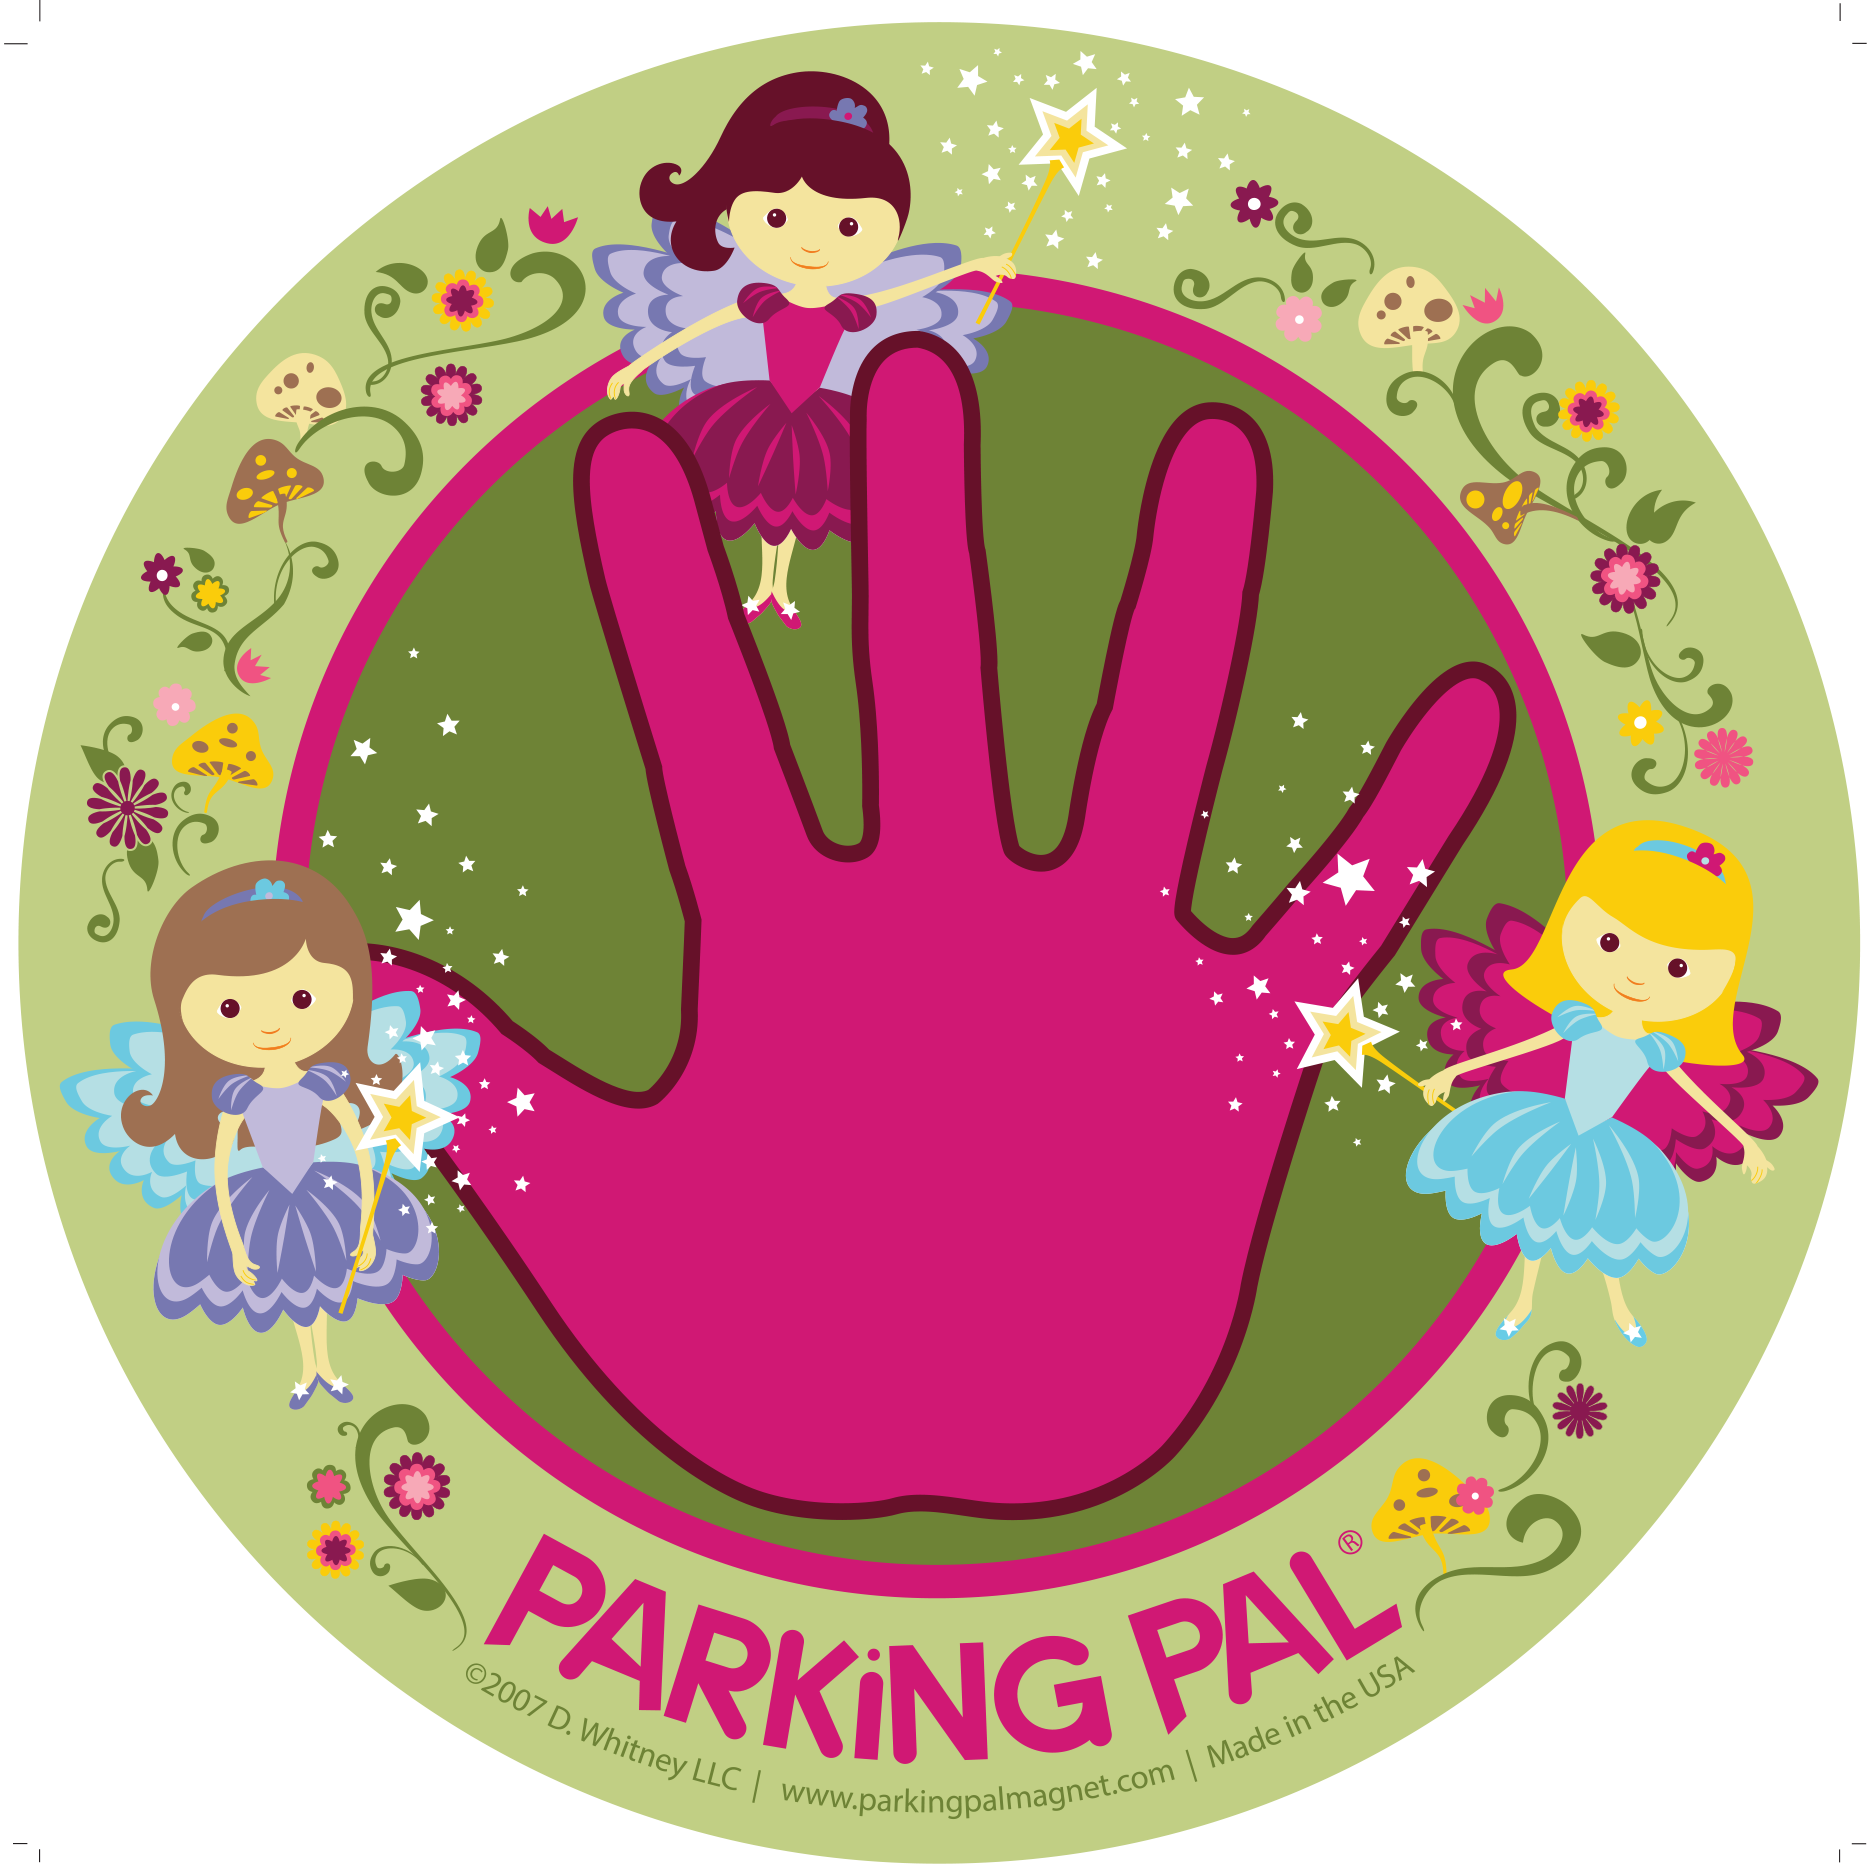 Car parking lot clipart png transparent download Fairy Parking Pal Car Magnet for Parking Lot Safety png transparent download